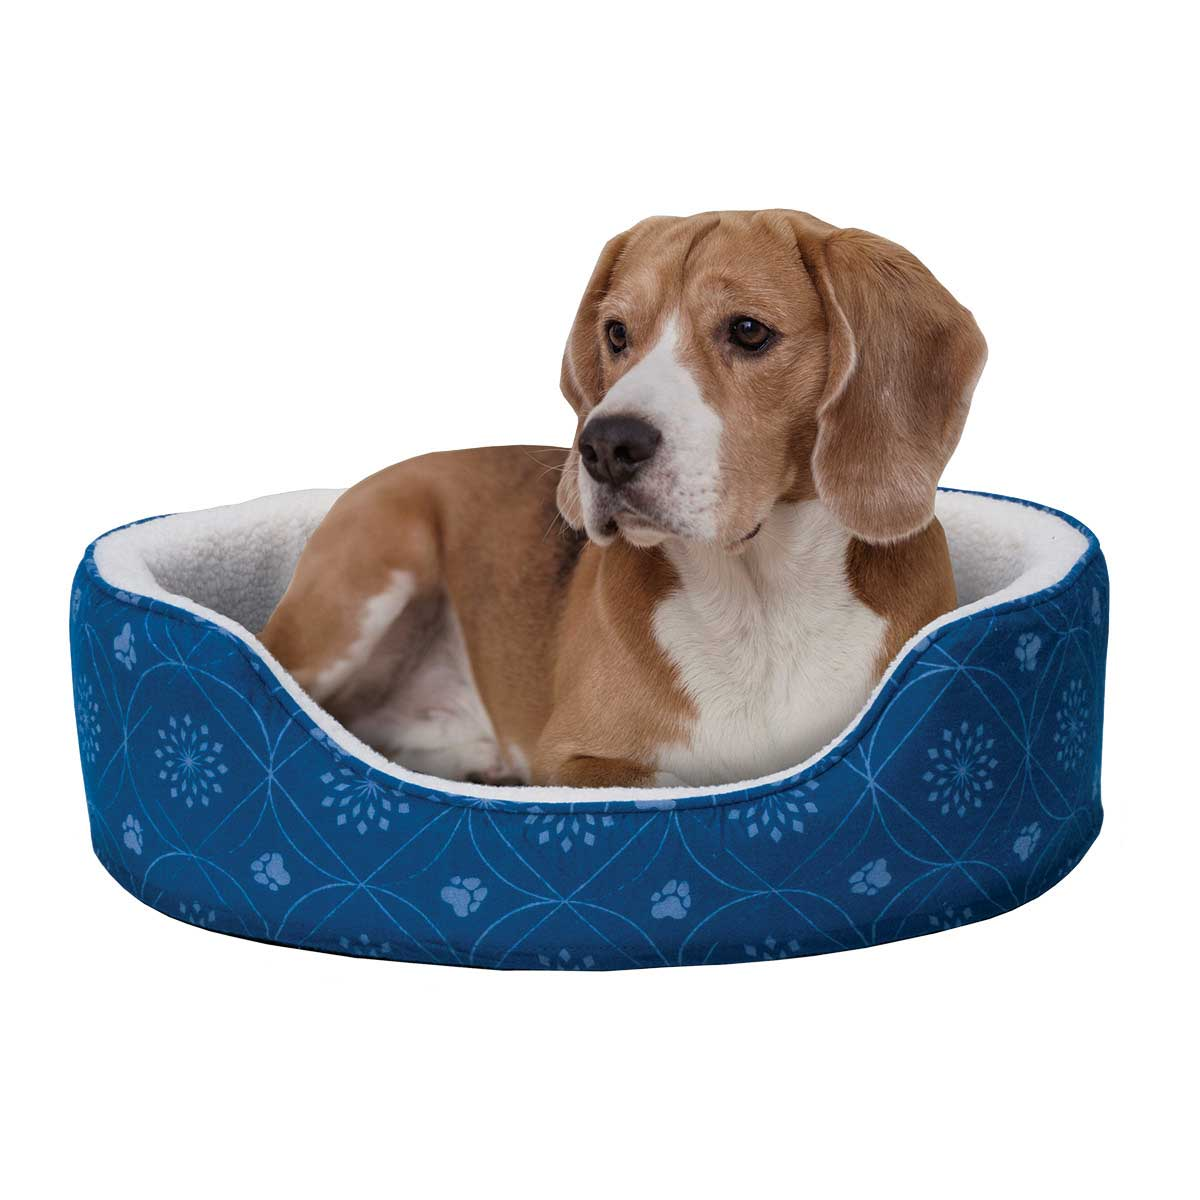 26.5 by 30 inches FurHaven Twilight Blue Nap Paw Print Decor Flannel Oval Pet Bed in